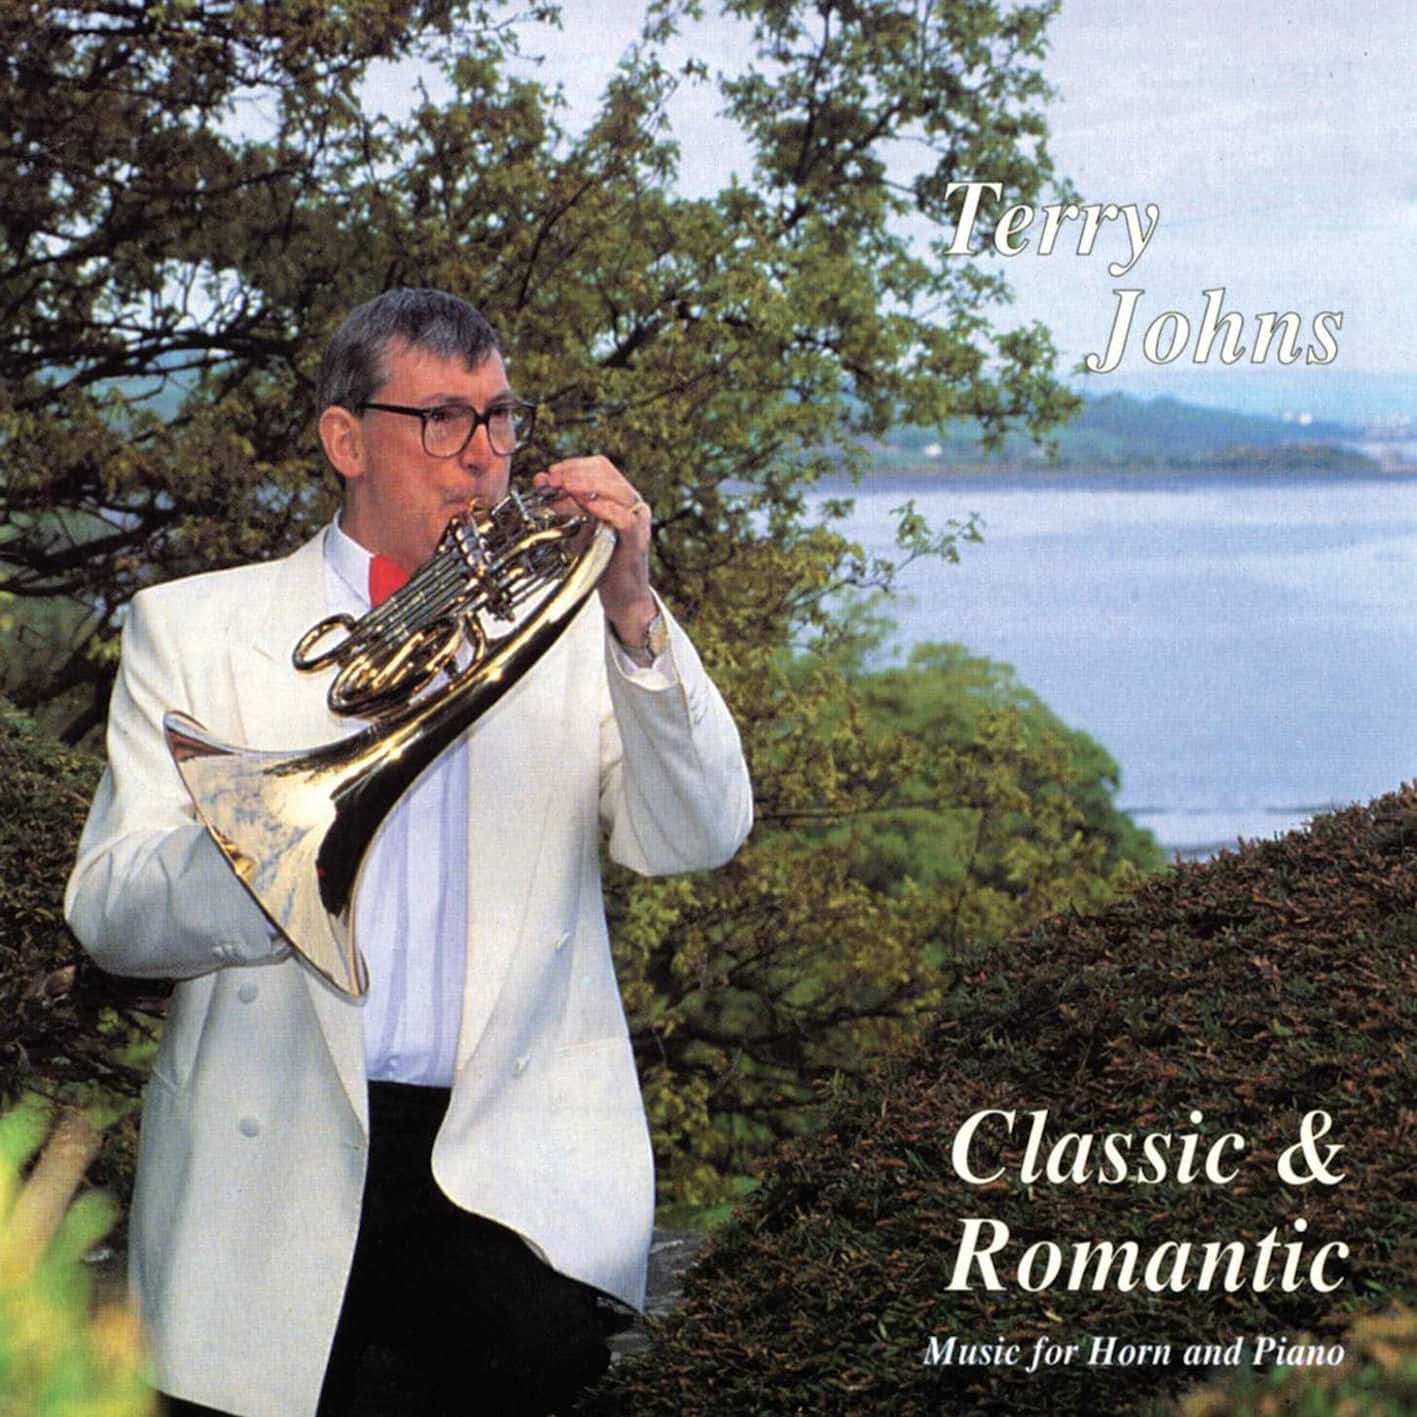 Classic and Romantic Music for Horn